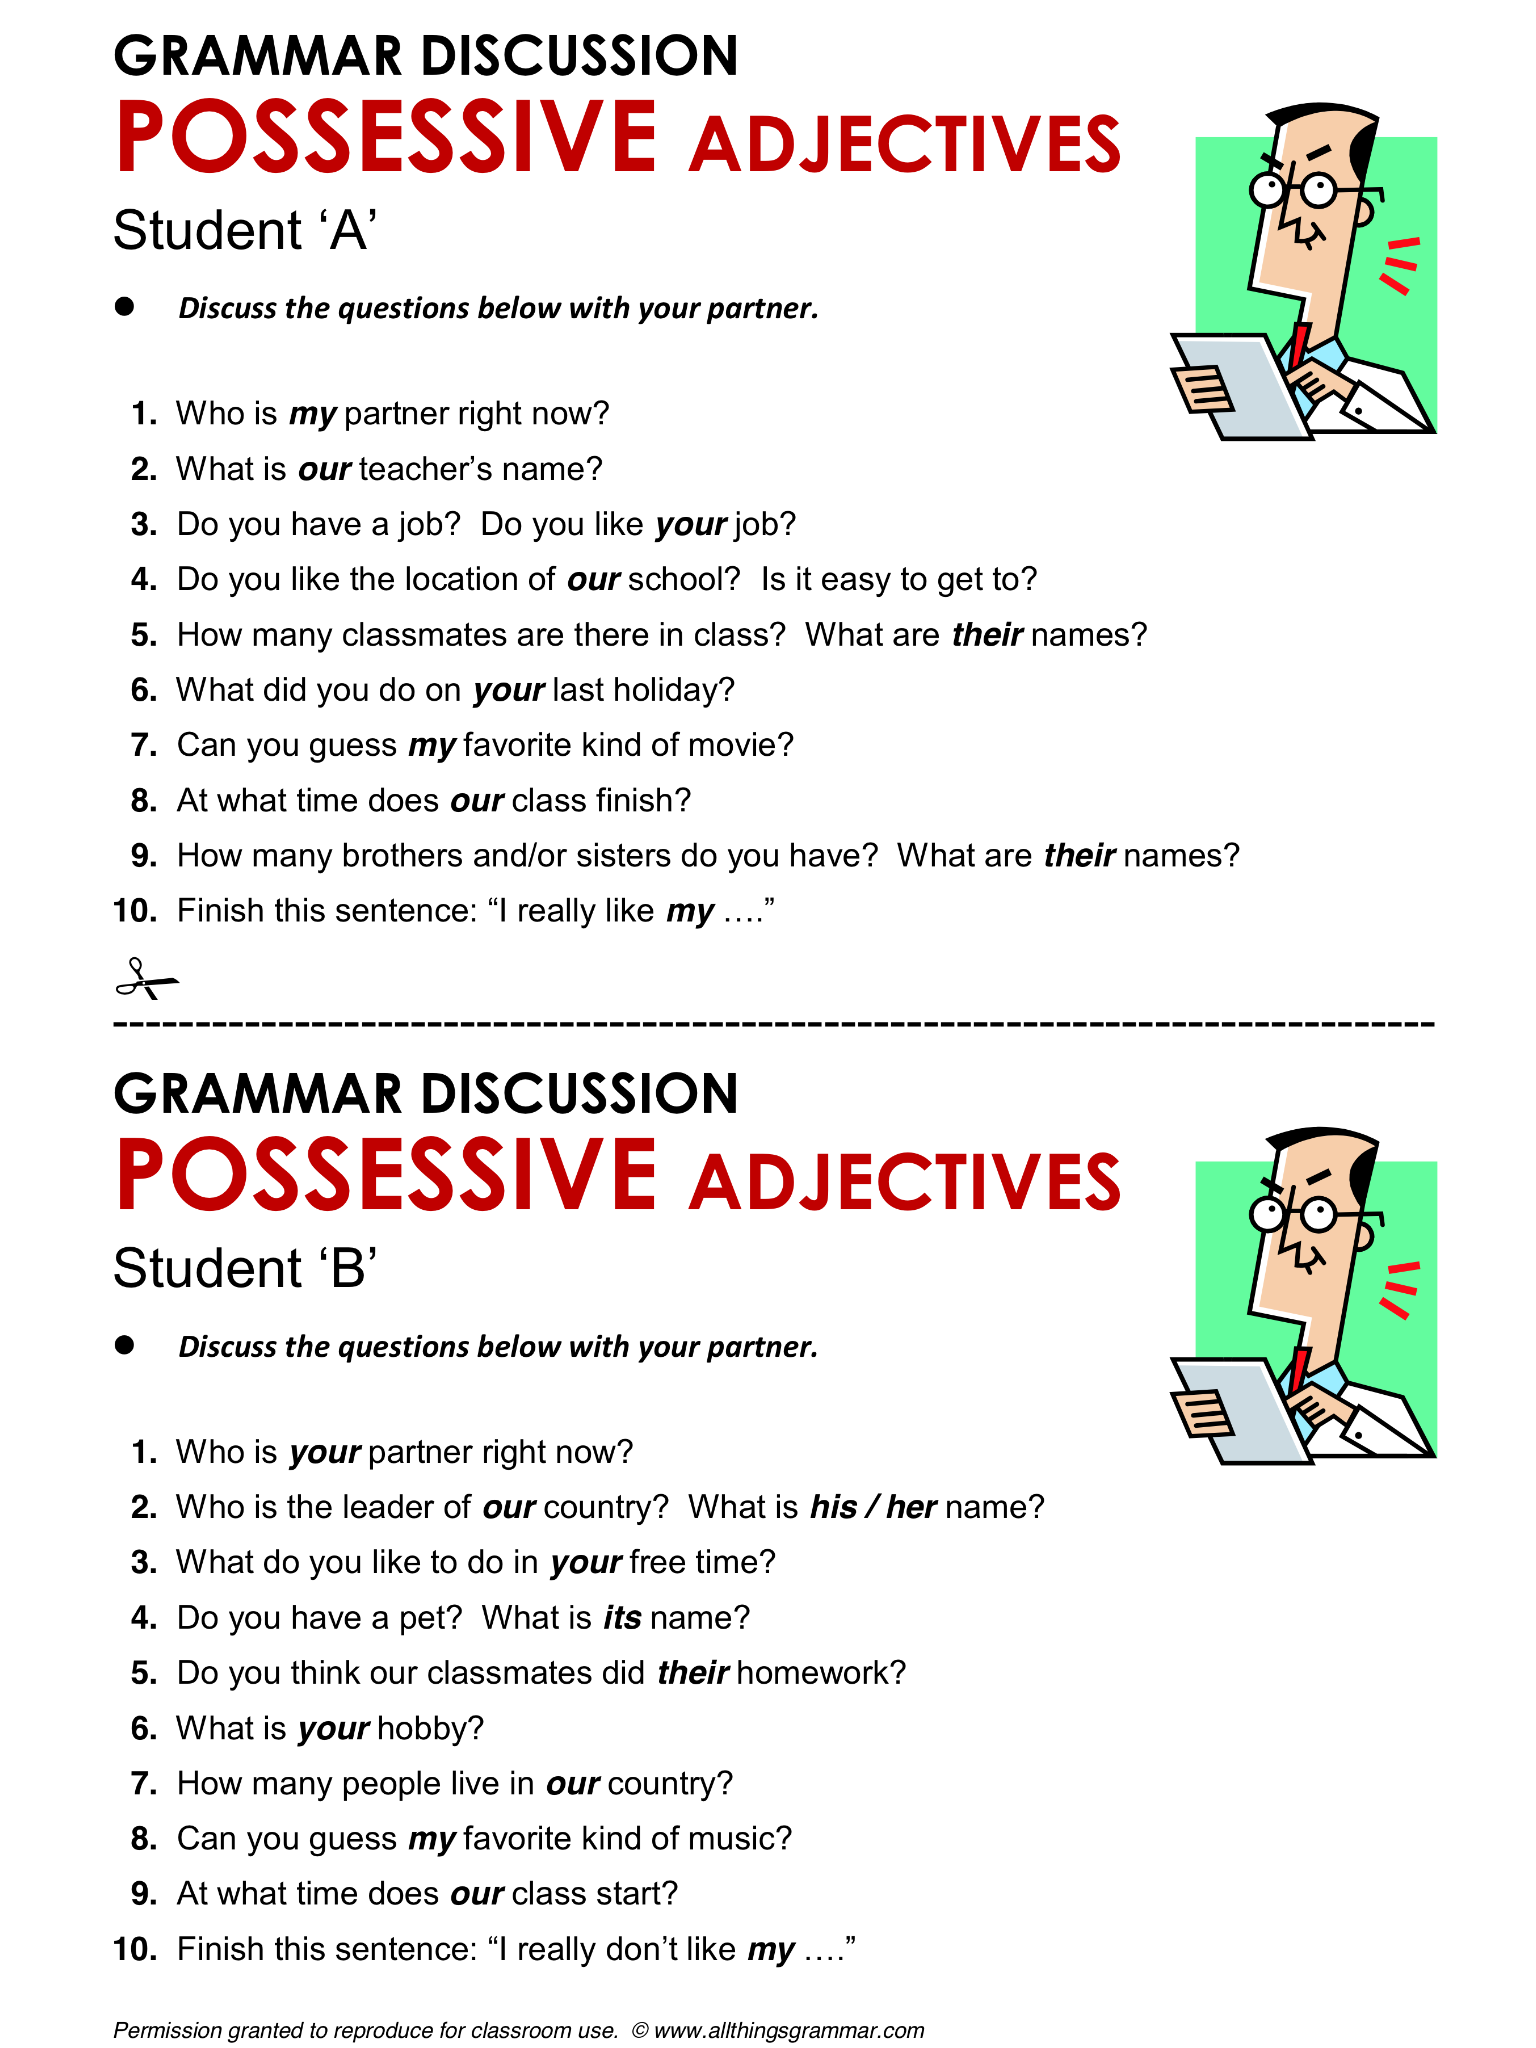 English Grammar Possessive Adjectives Lthingsgrammar